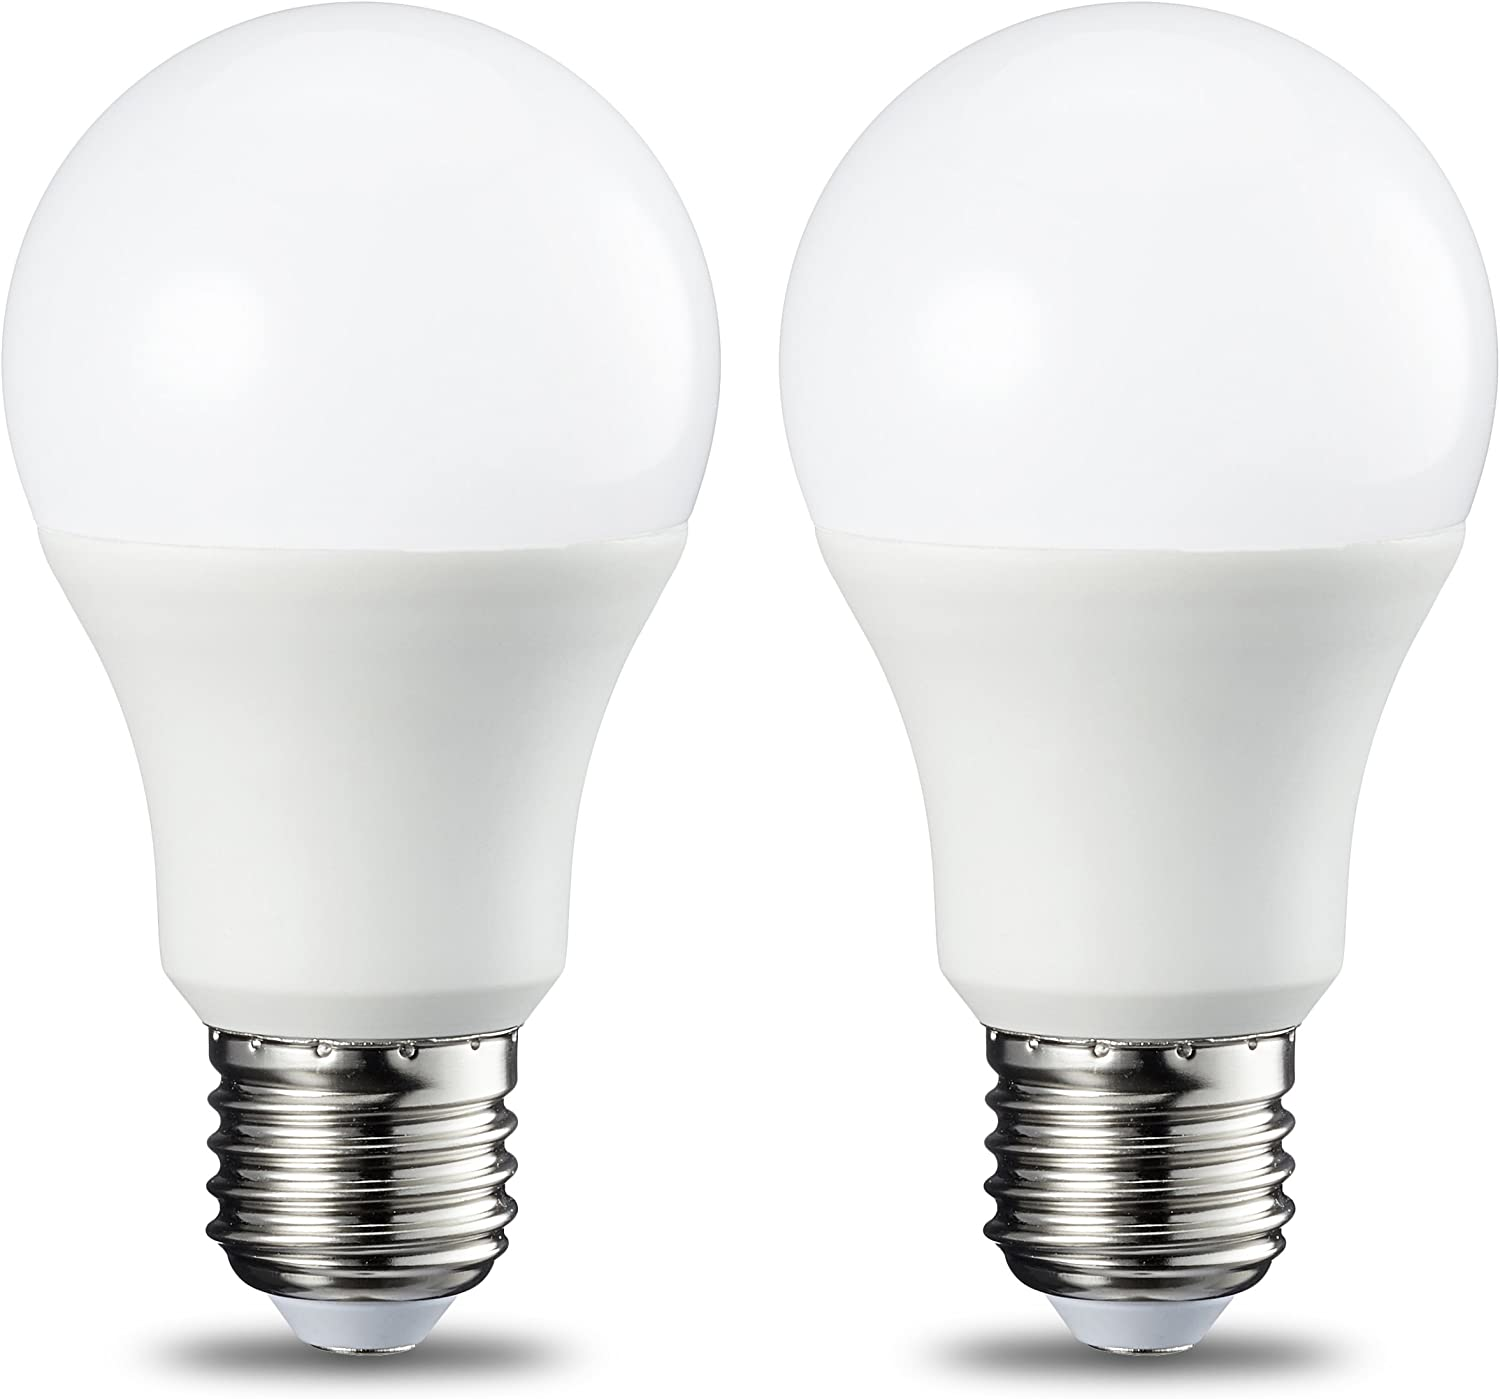 AmazonBasics LED E27 Edison Screw Bulb, 8.5W (equivalent to 60W), Cool White Pack of 2